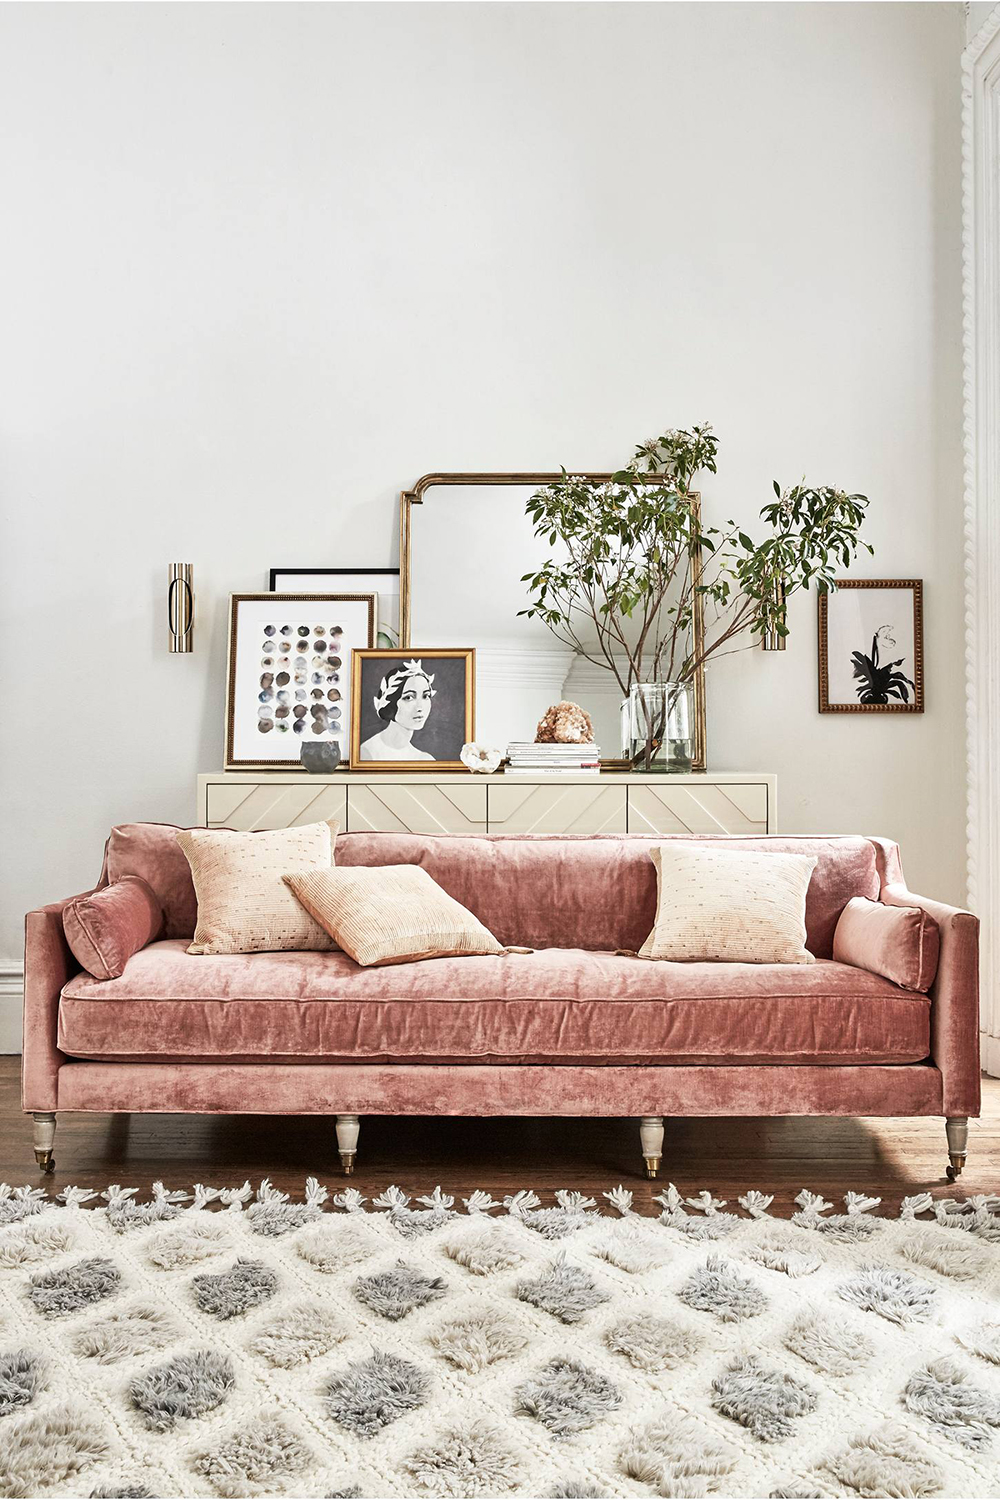 Living The Anthropologie Way Of Life Living Rooms: Pinterest Picks